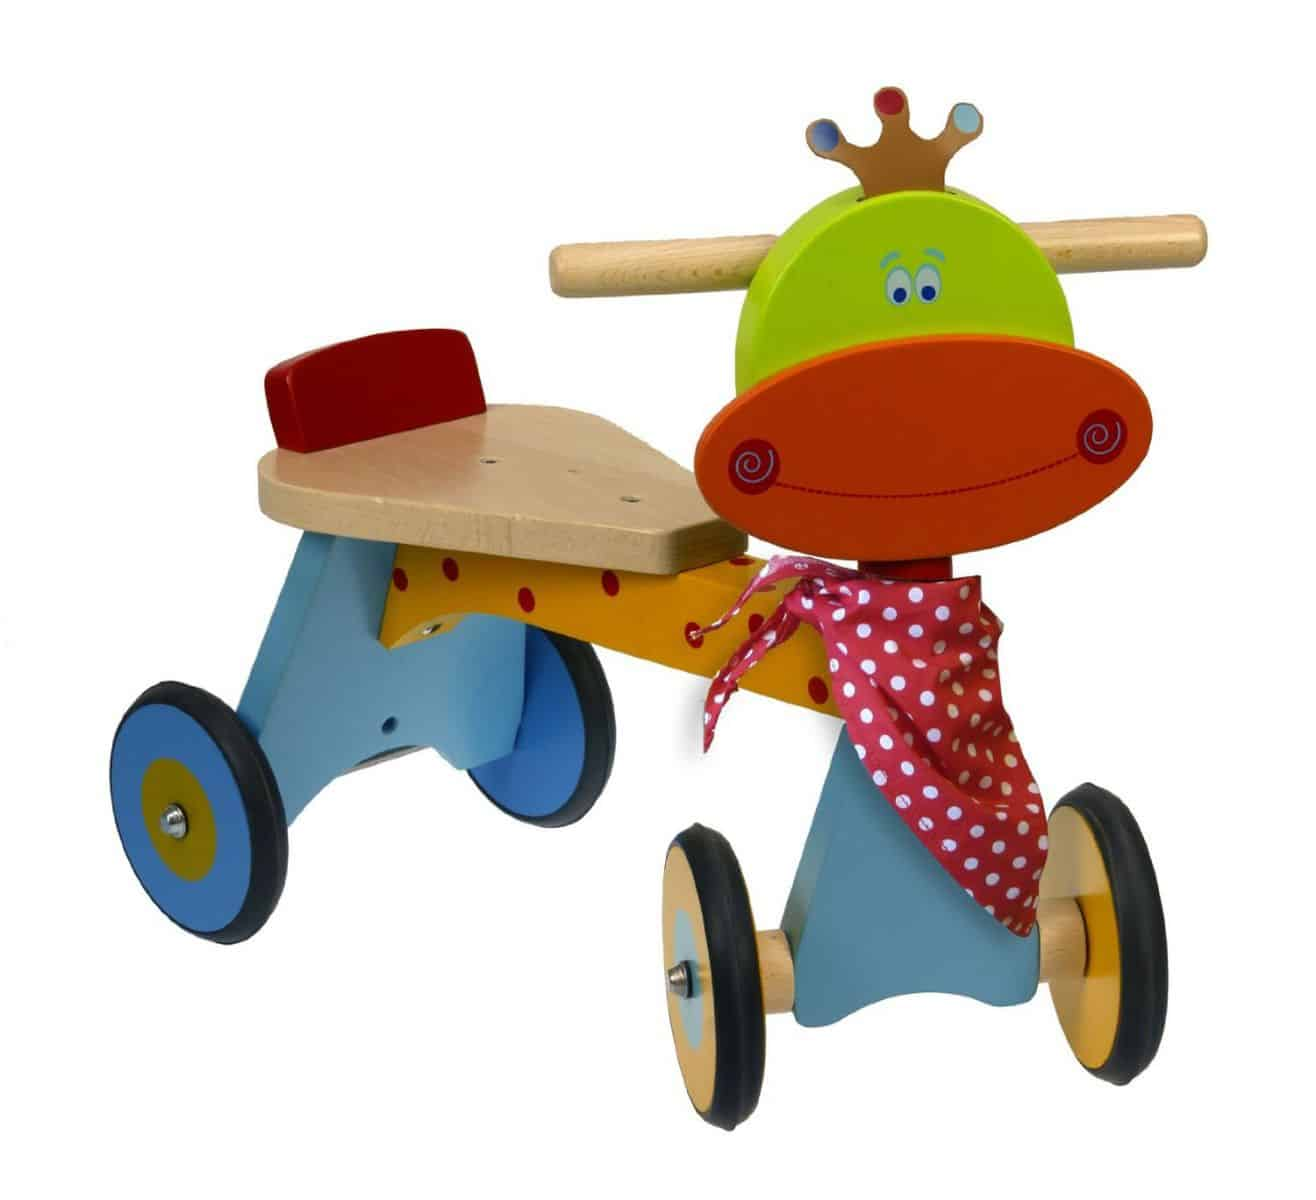 Toys For Toddlers : Starter wooden ride on toys for toddlers